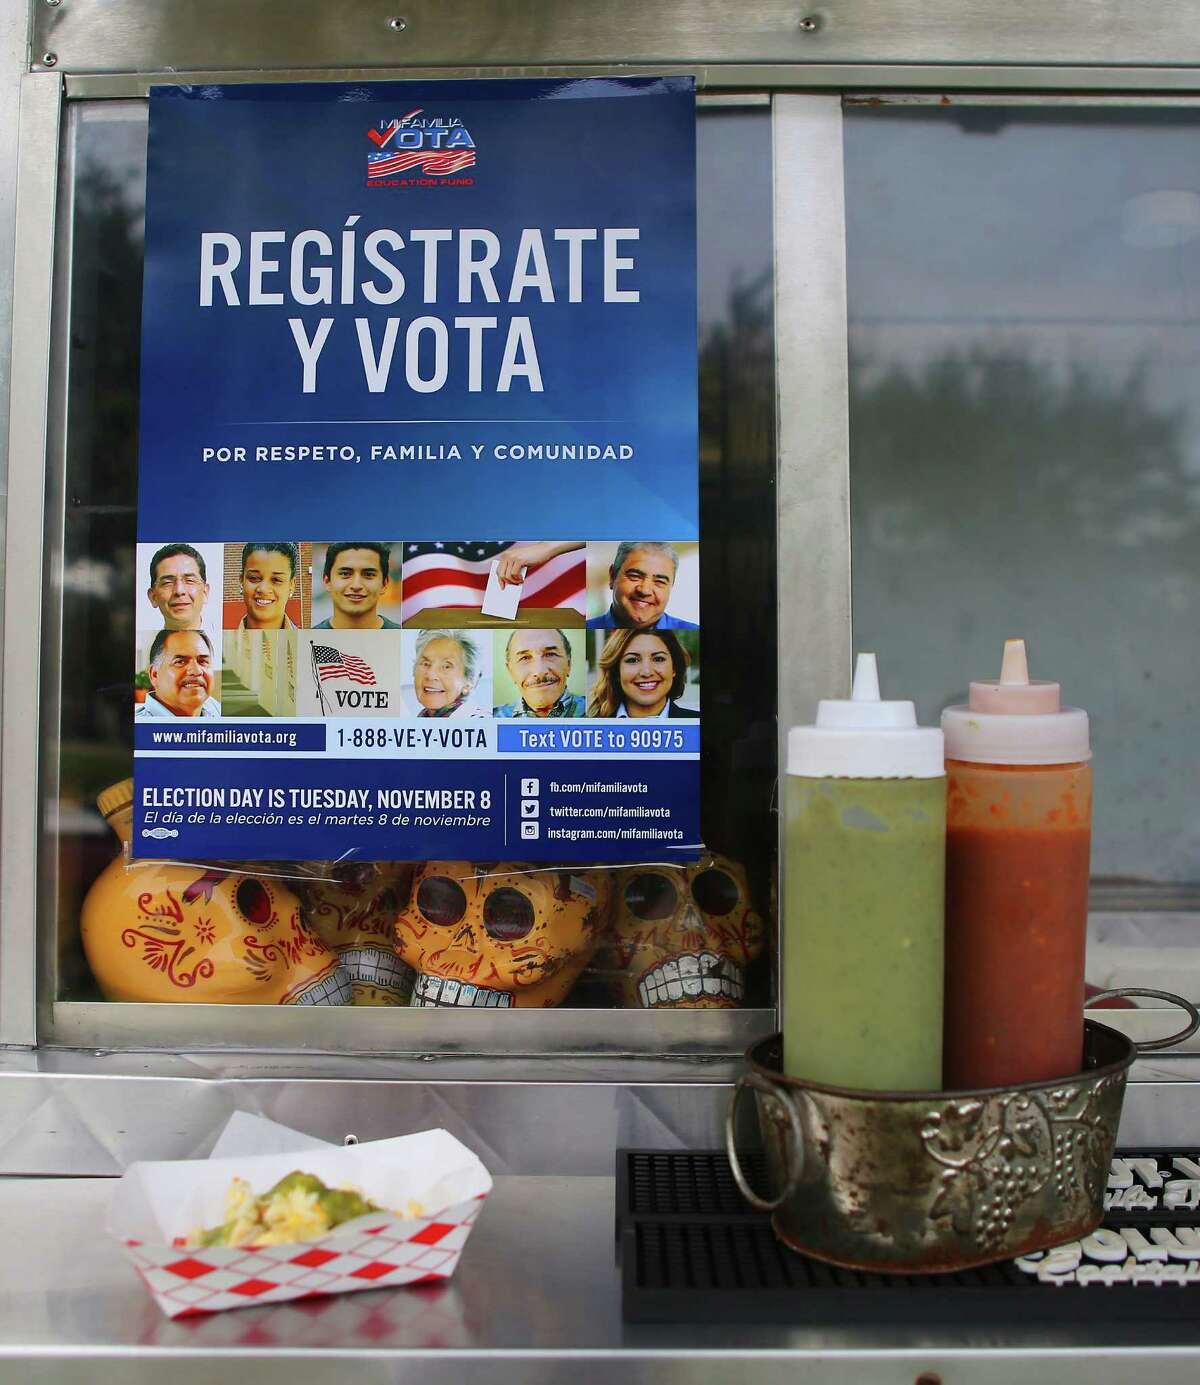 Voting registration information is displayed prominently at the Tila's Tacos truck.